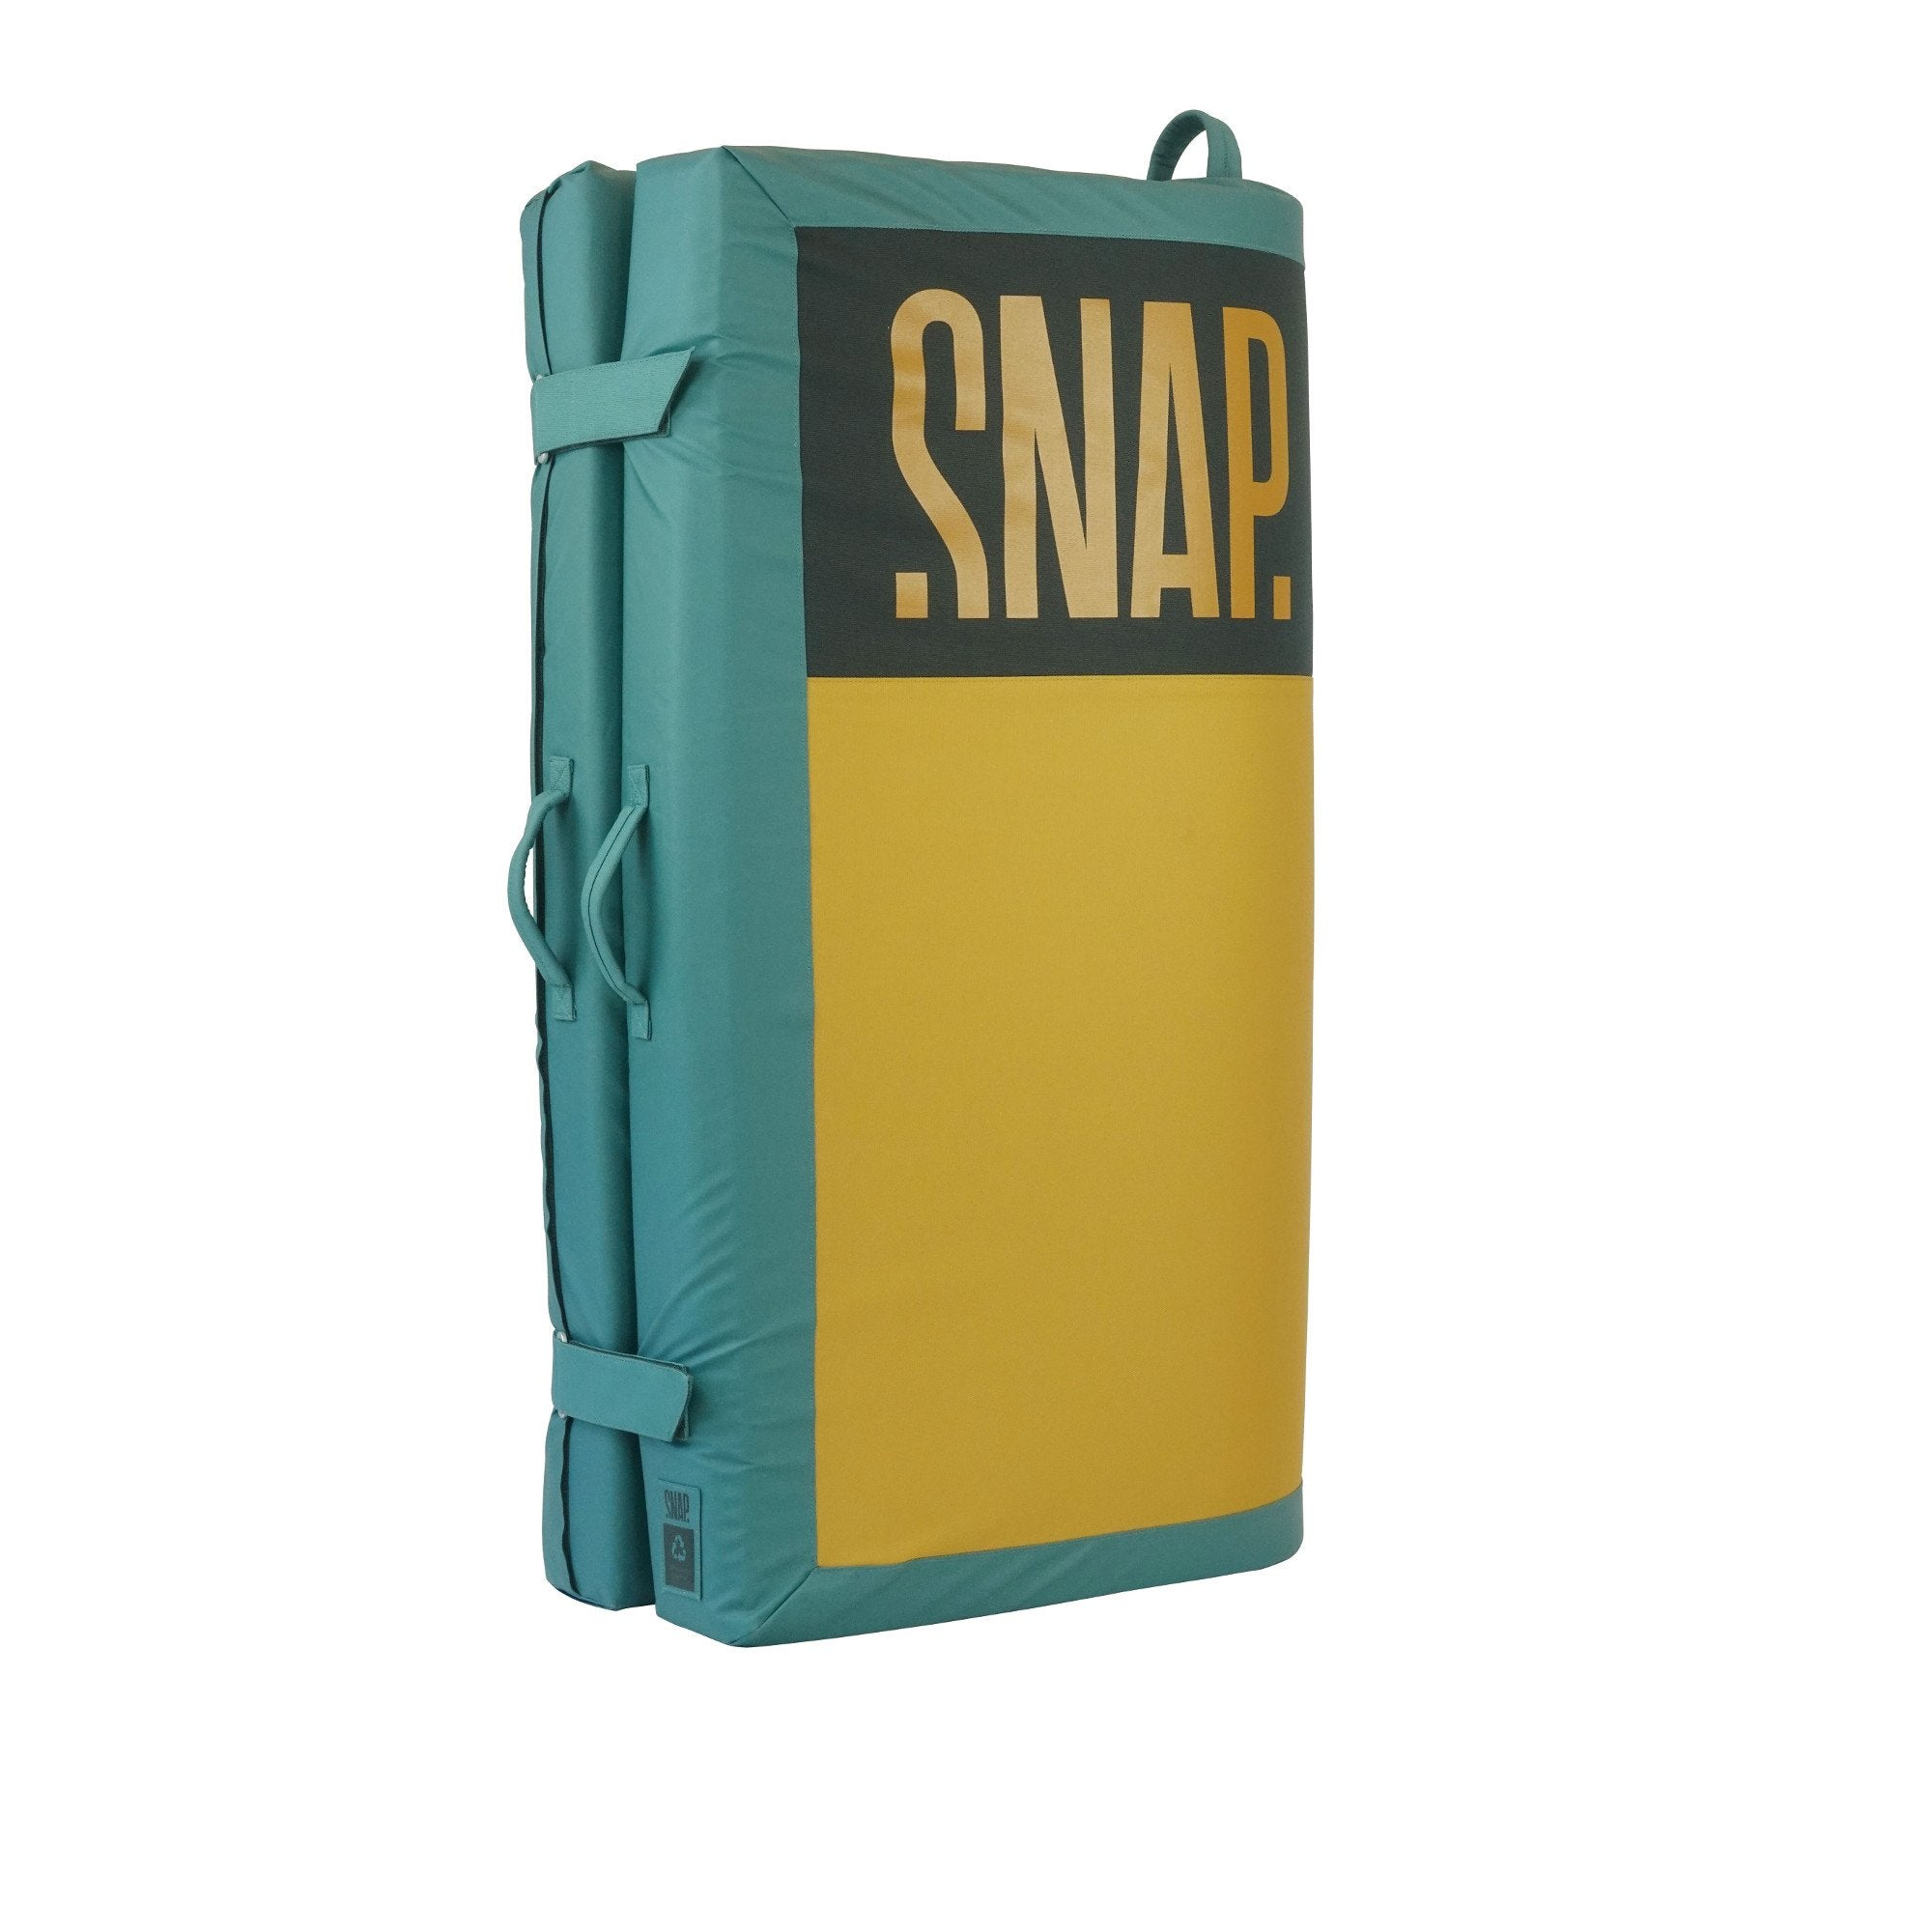 Snap Stamina crash pad shown fully closed and stood up in green and yellow colours